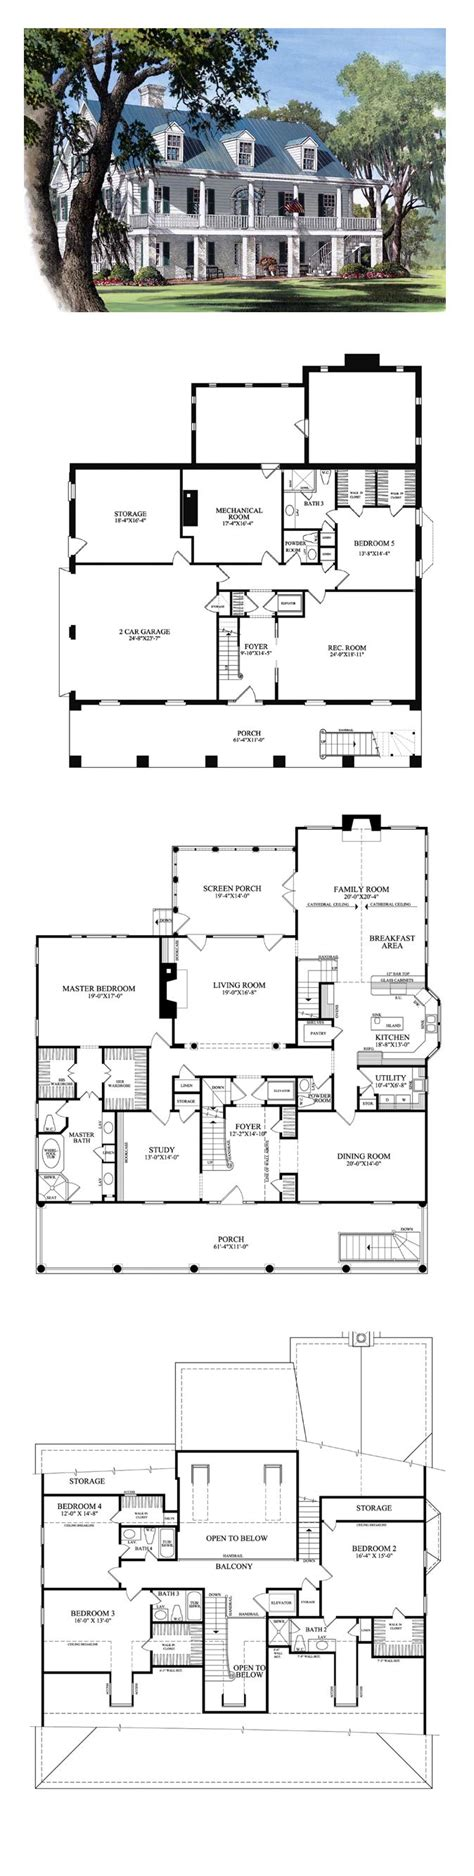 mini mansion floor plans house plan plantation plans mini mansion shotgun style